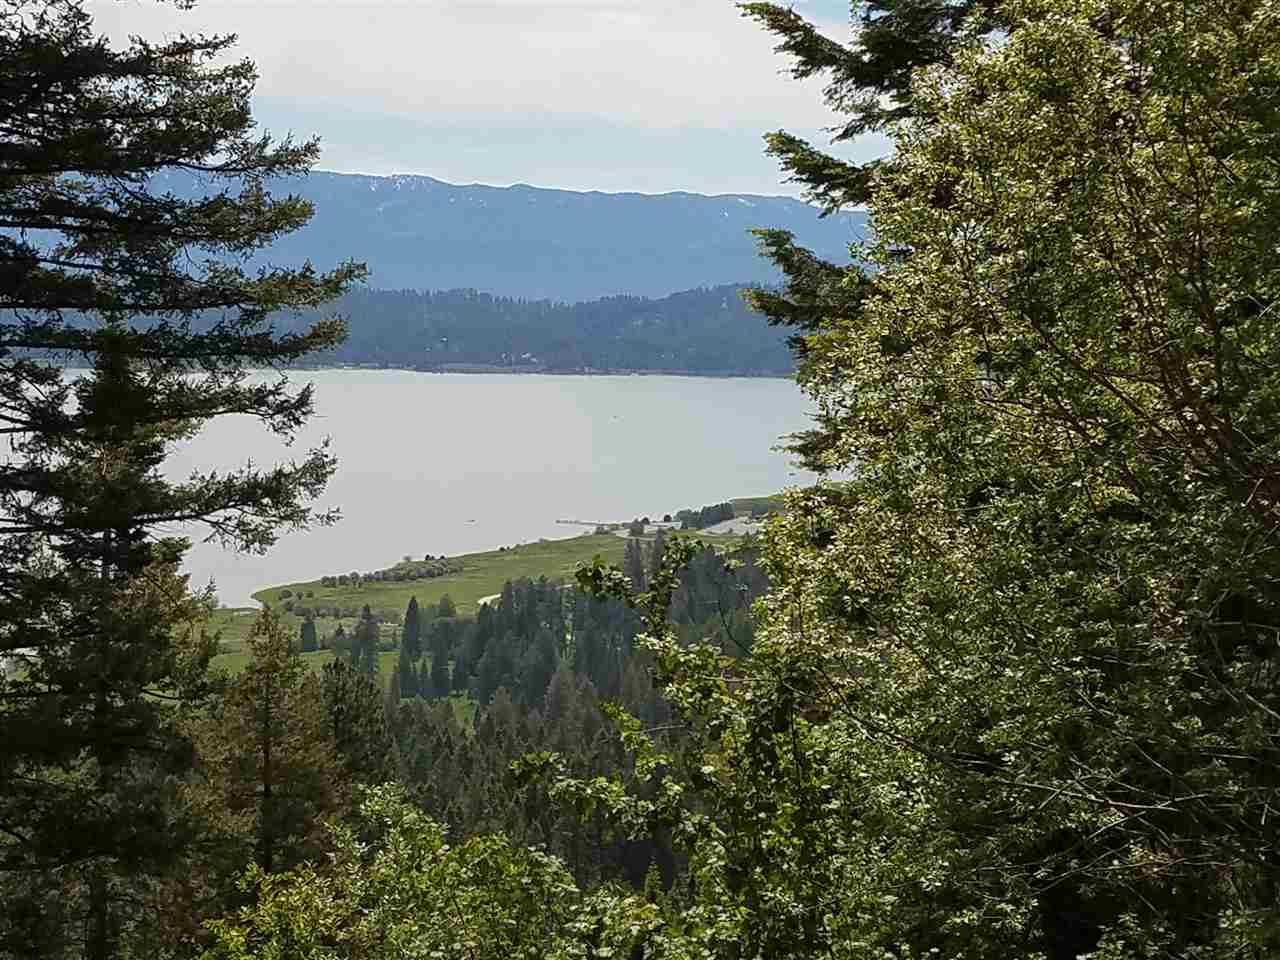 Idaho's Premier Recreation Property, Surrounded by National Forest, Incredible Views of Lake Cascade, Access to Snowmobile and ATV Trails, Surveyed into 22 Parcels, all 20-23 Acre Parcels, Multiple Live Year-round Streams, Hyro-Generating Power Feasibility Study on file. Public roads 435 and 435P. 21 Parcels Available.